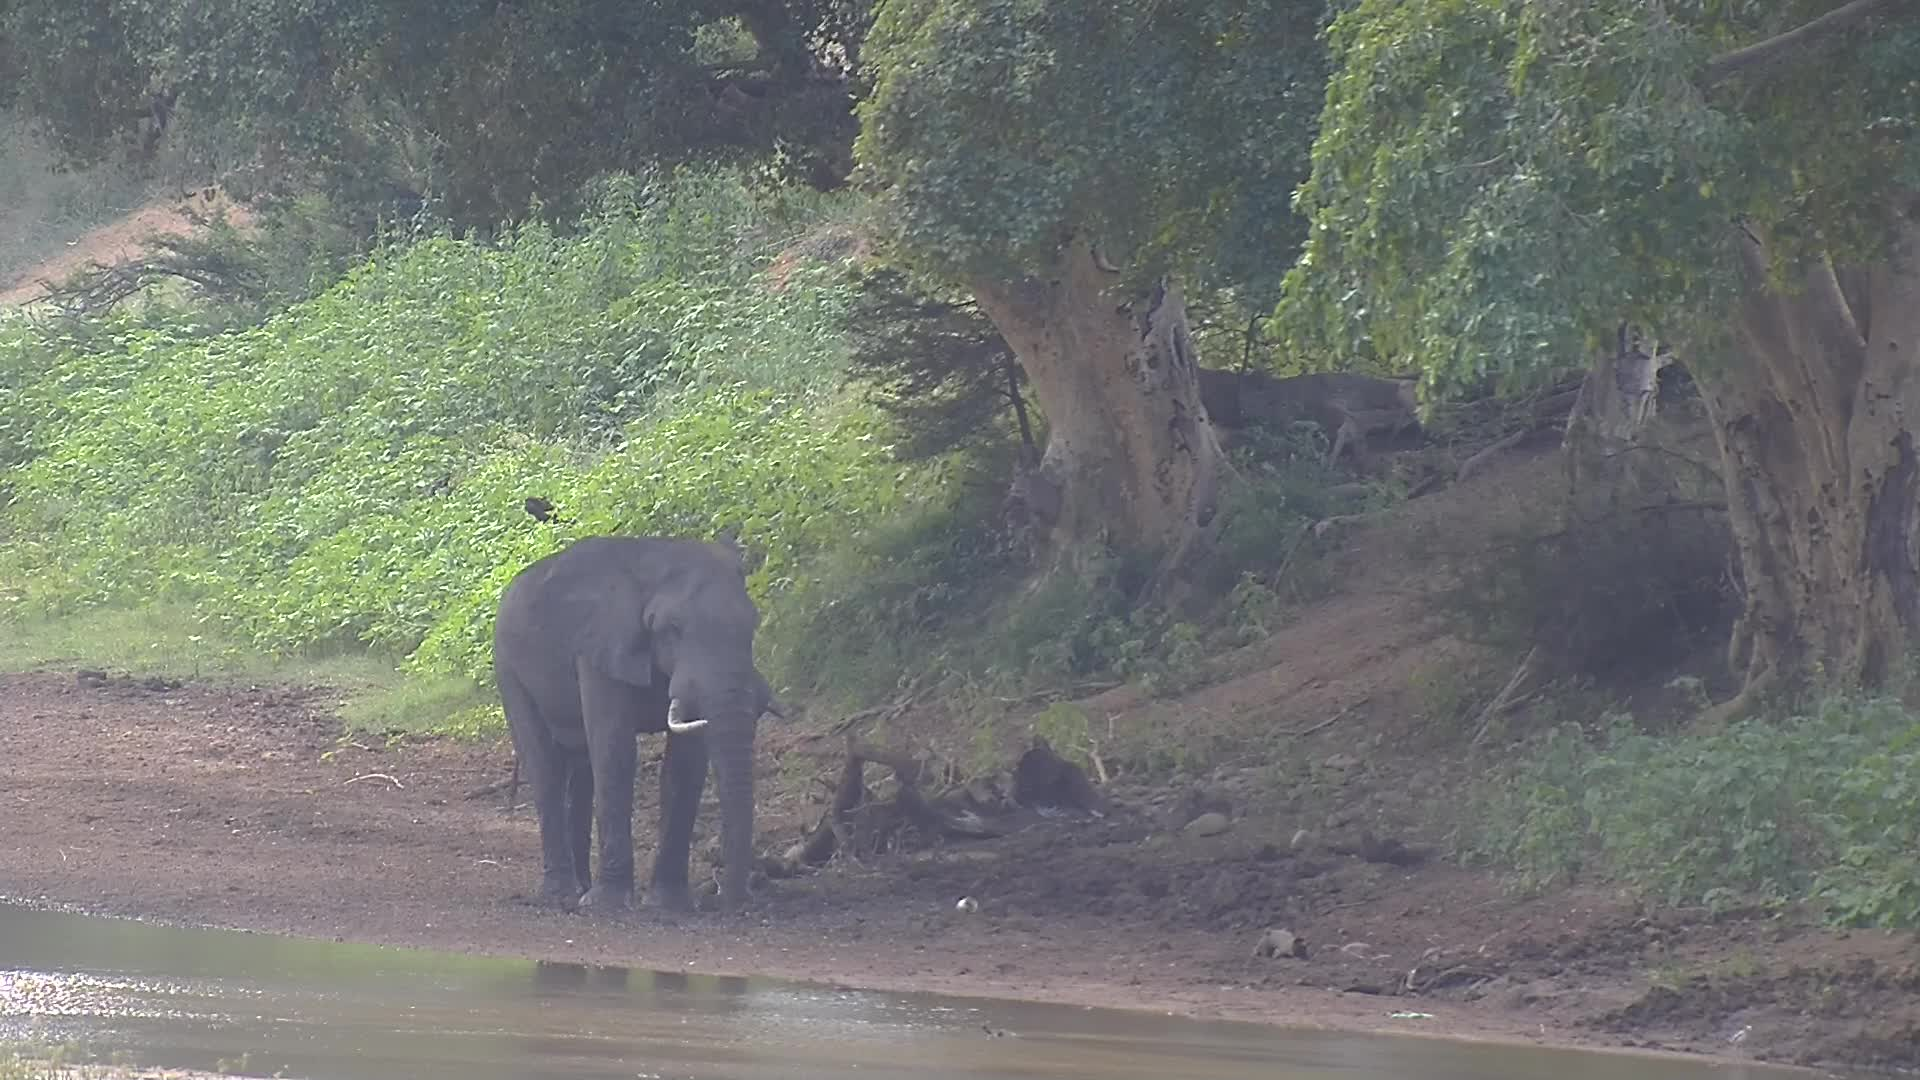 VIDEO: Elephant at the river